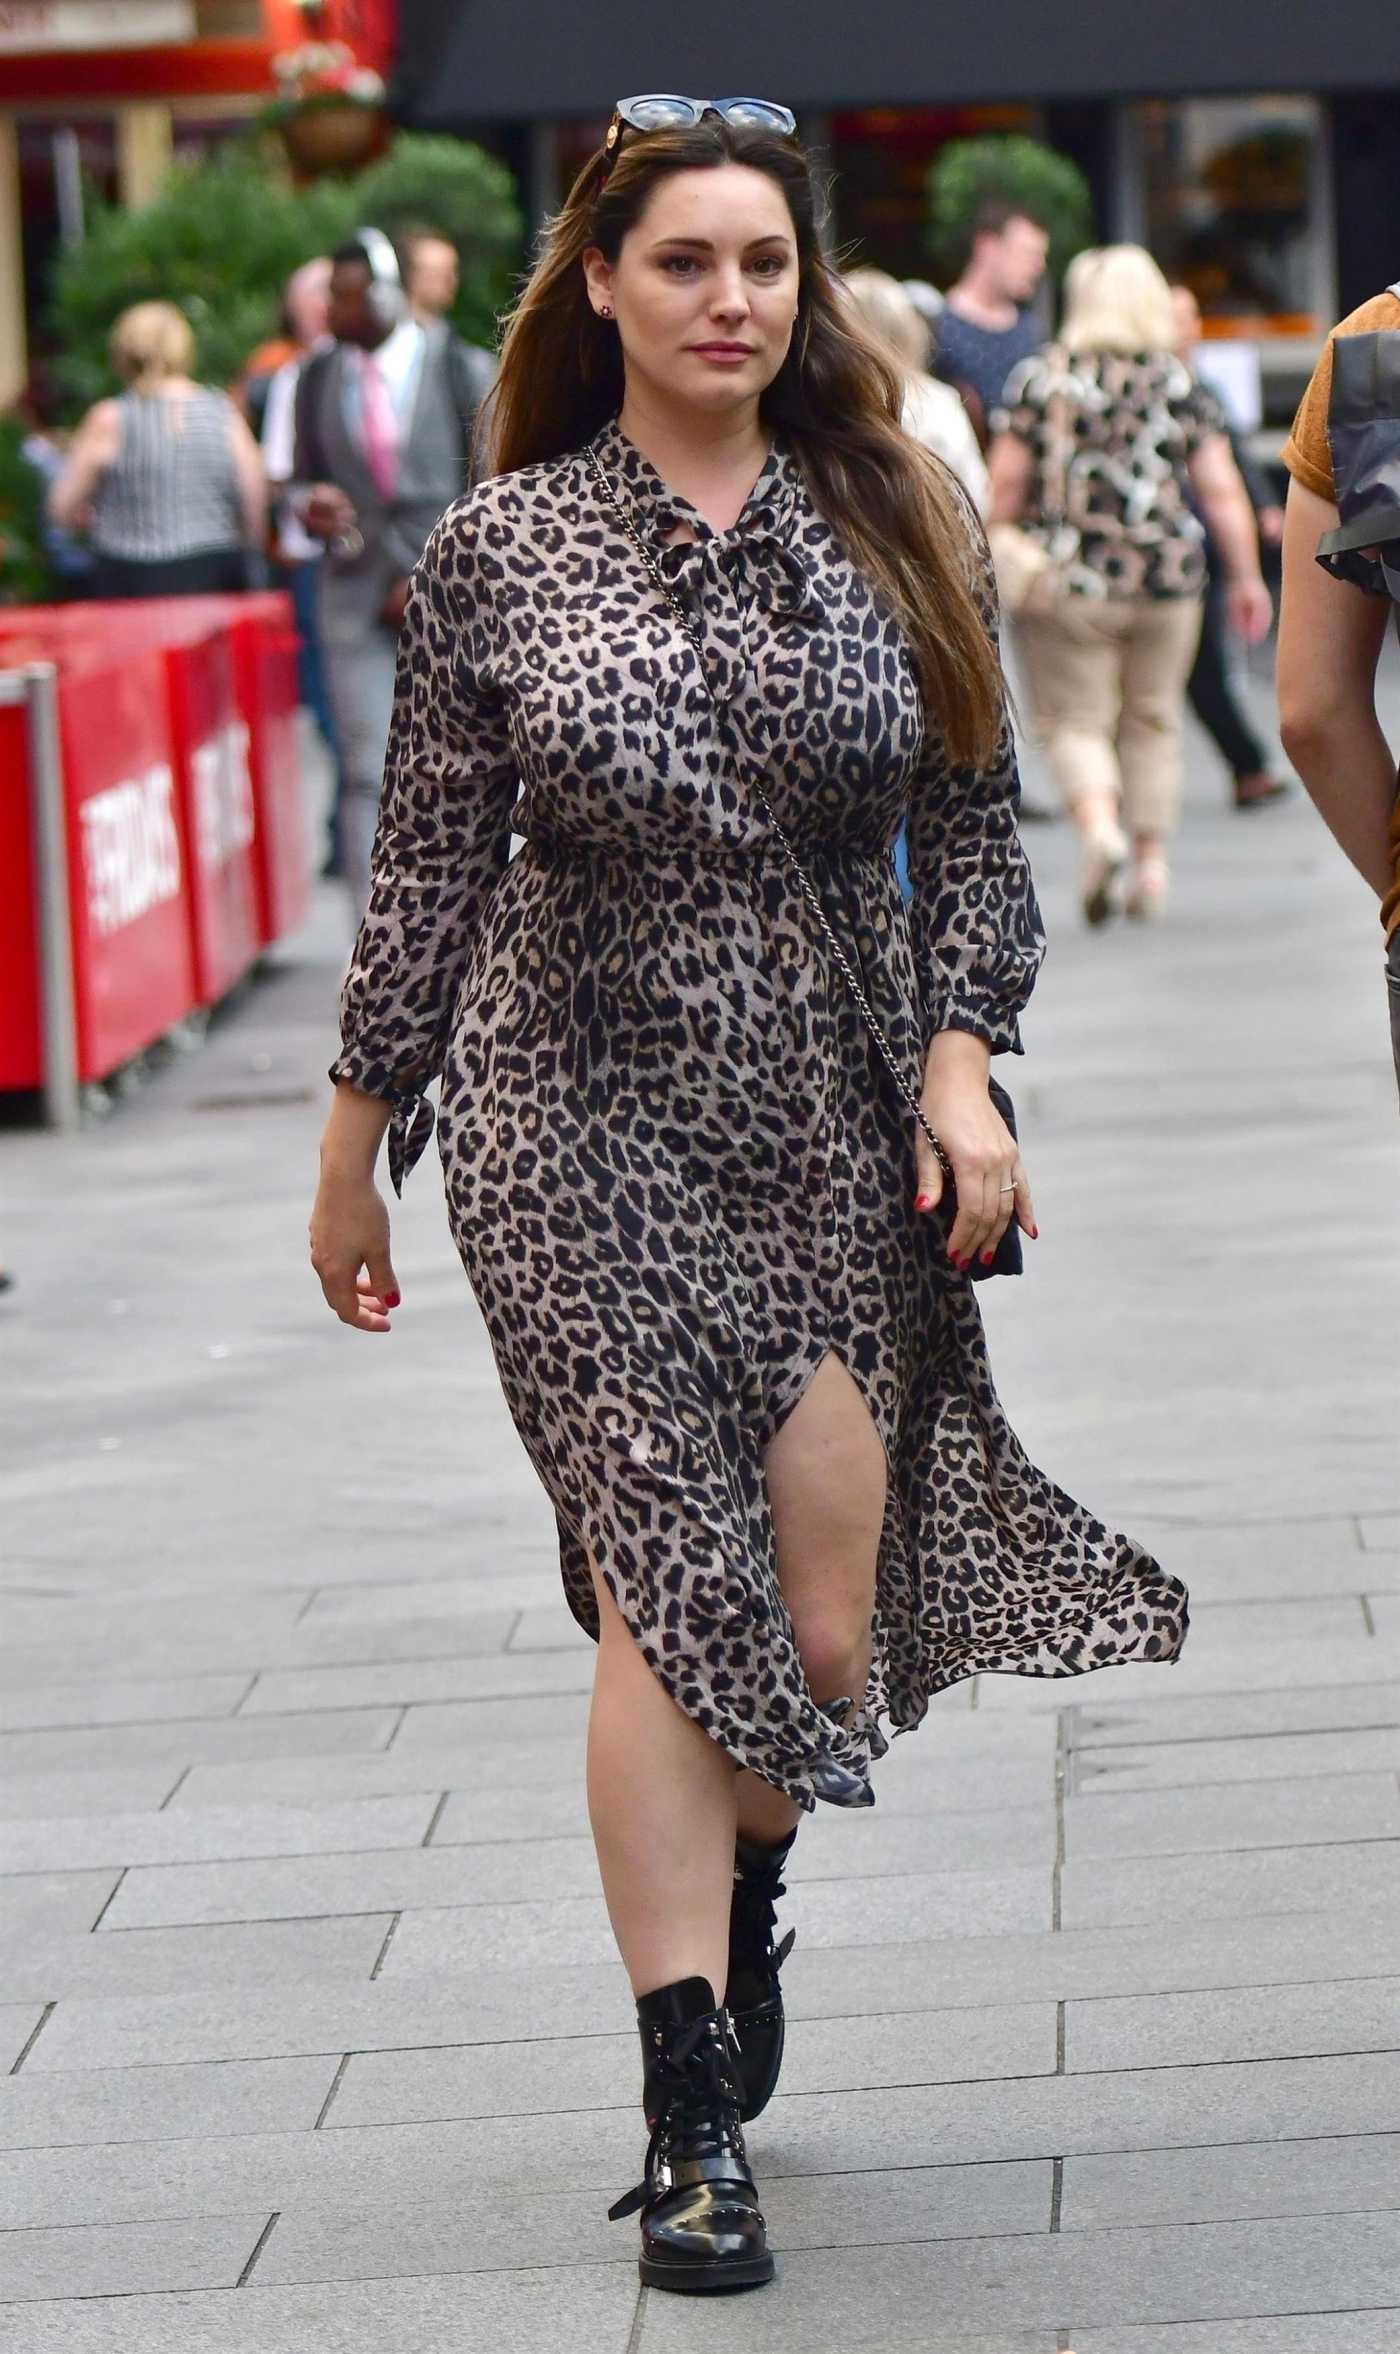 Kelly Brook in a Leopard Print Dress Arrives at Global Radio in London 08/15/2019